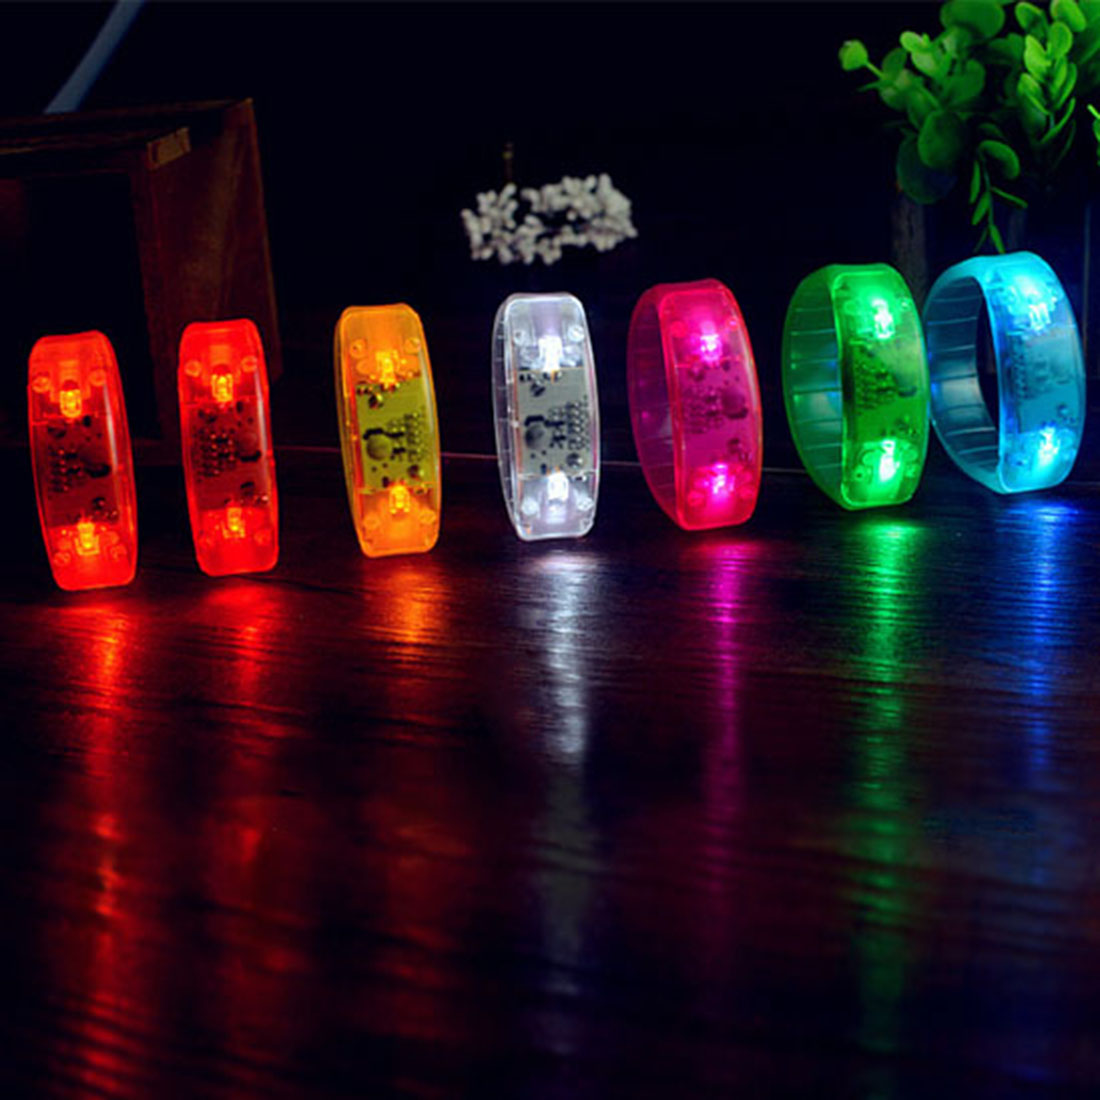 HOT!!Unisex Sound Controlled LED Light Up Bracelet Activated Glow Flash Bangle For Mother's Day Festival Party fast delivery(China (Mainland))